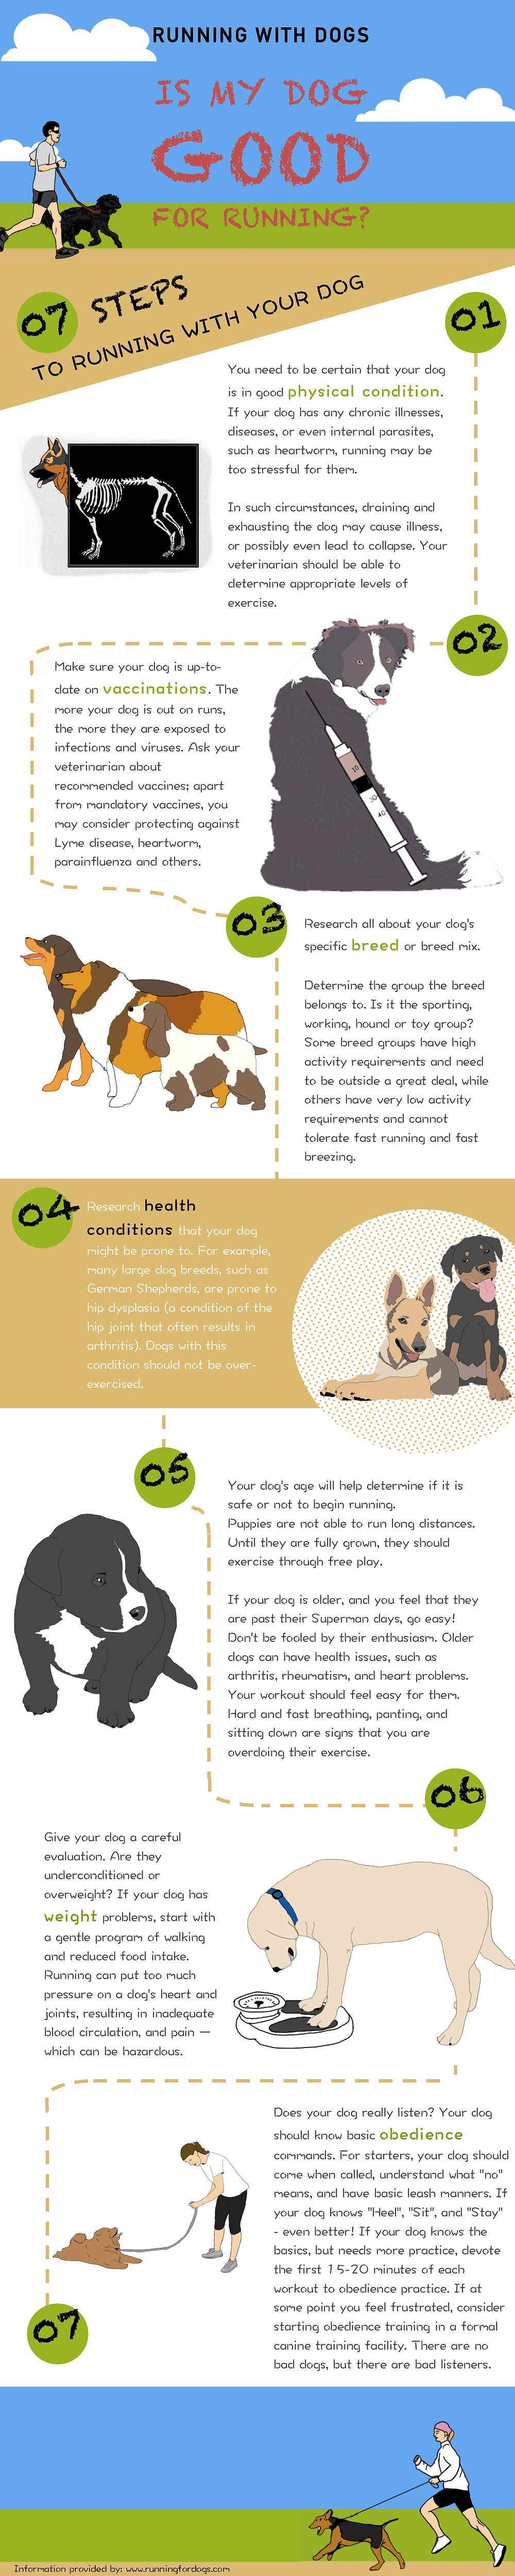 unning with dogs: Is my dog good for running? (Infographic)